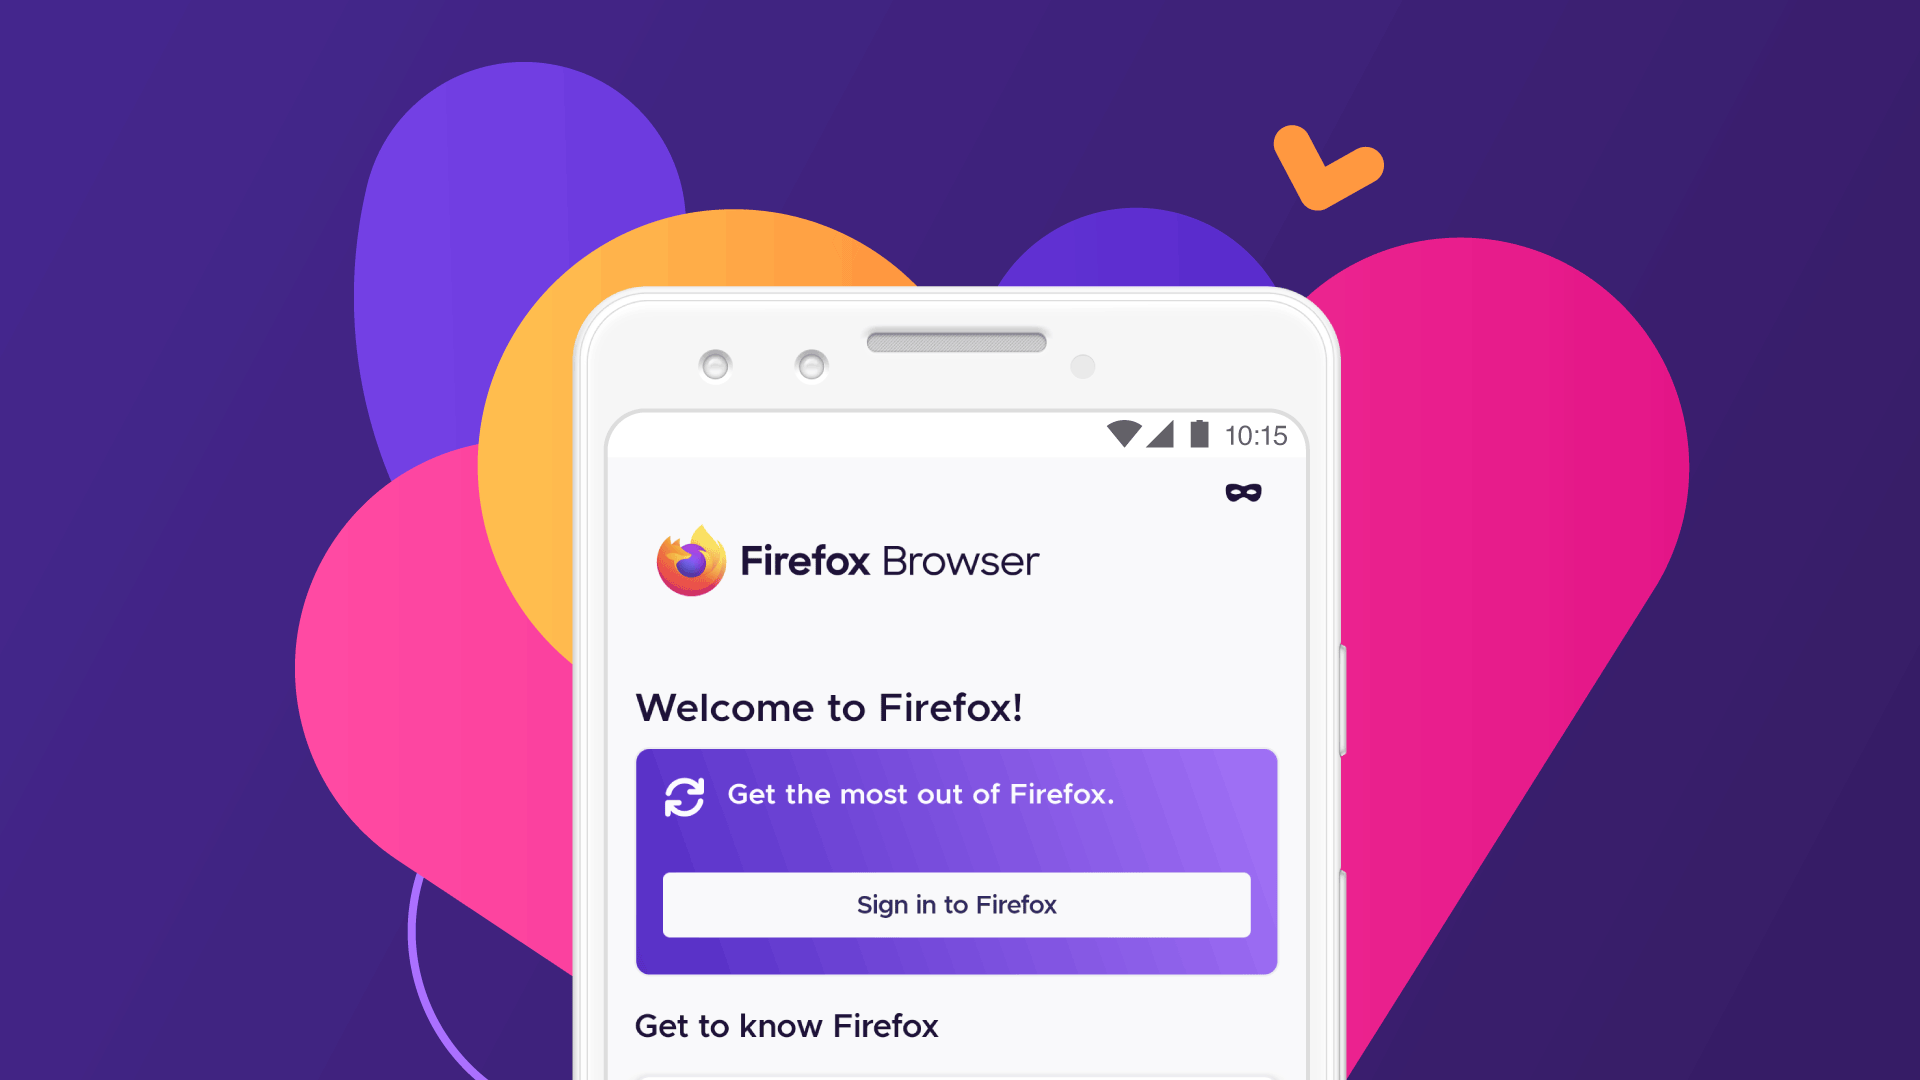 Firefox - Check Out Some Tips on How to Use the App on an Android